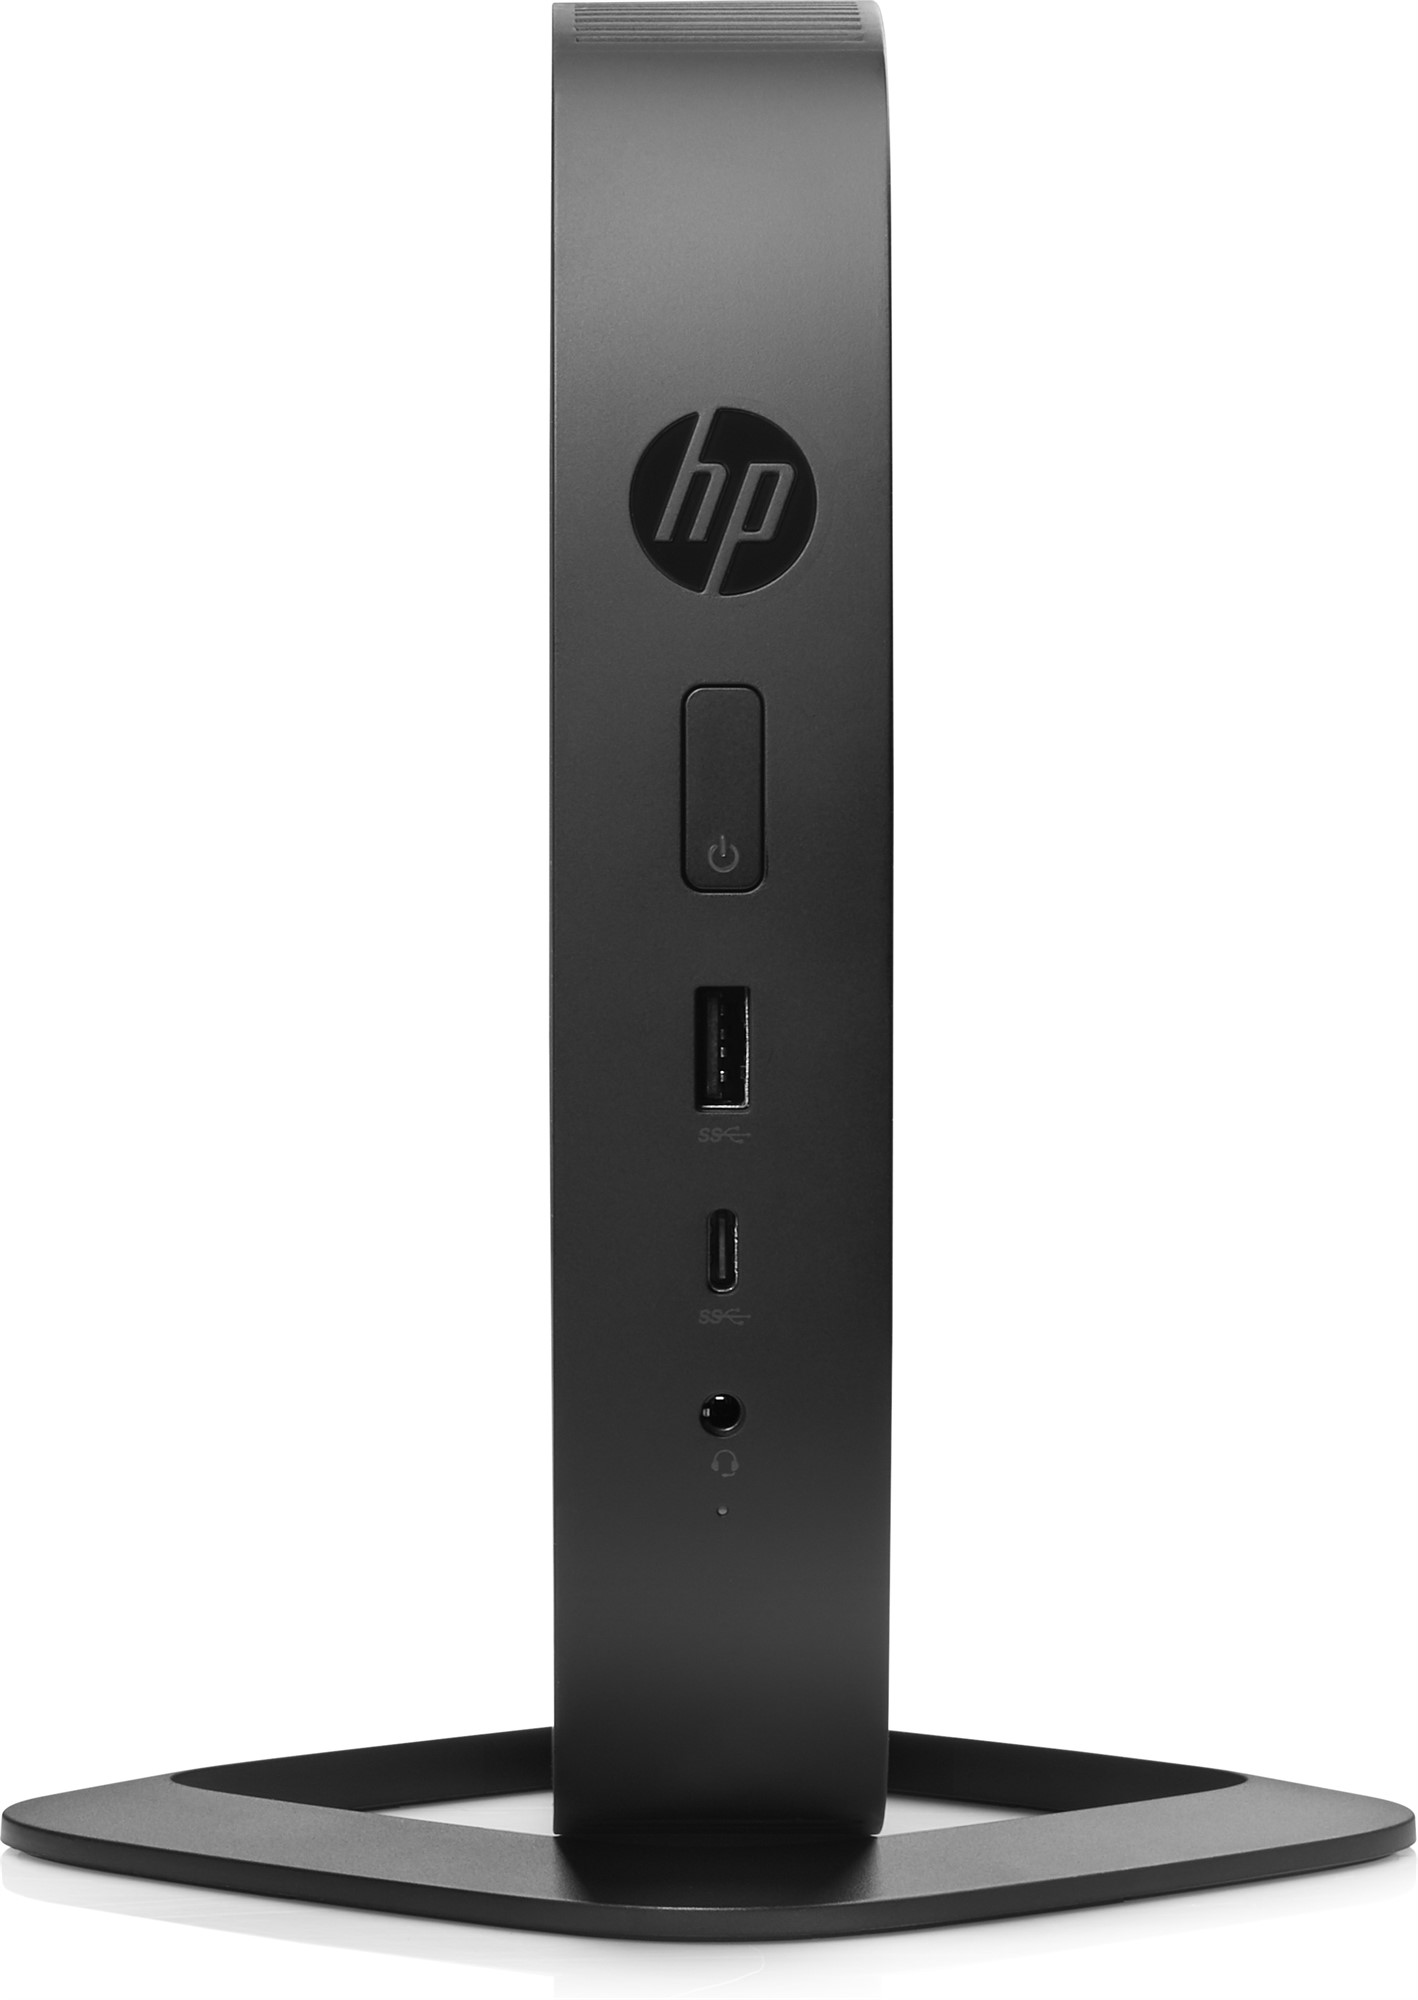 HP 2DH81AT T530 1.5GHZ GX-215JJ 960G BLACK